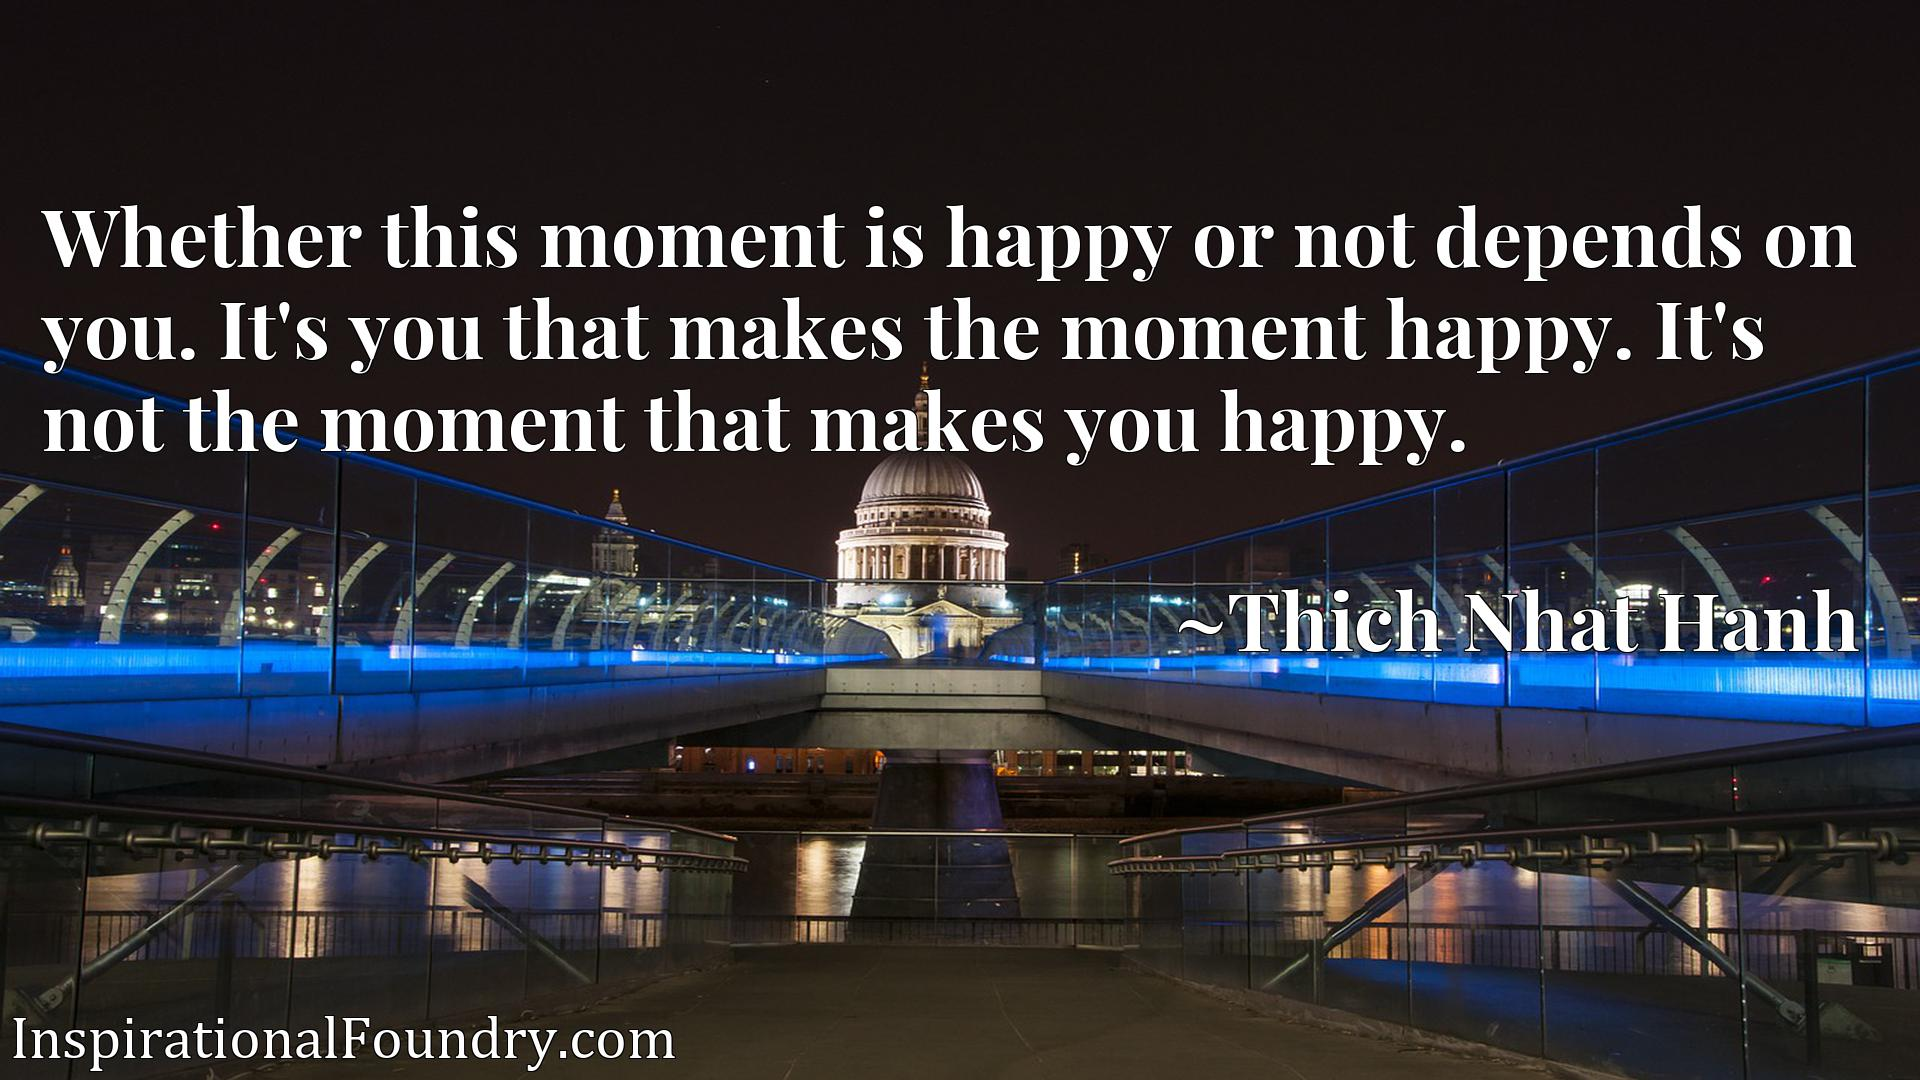 Whether this moment is happy or not depends on you. It's you that makes the moment happy. It's not the moment that makes you happy.